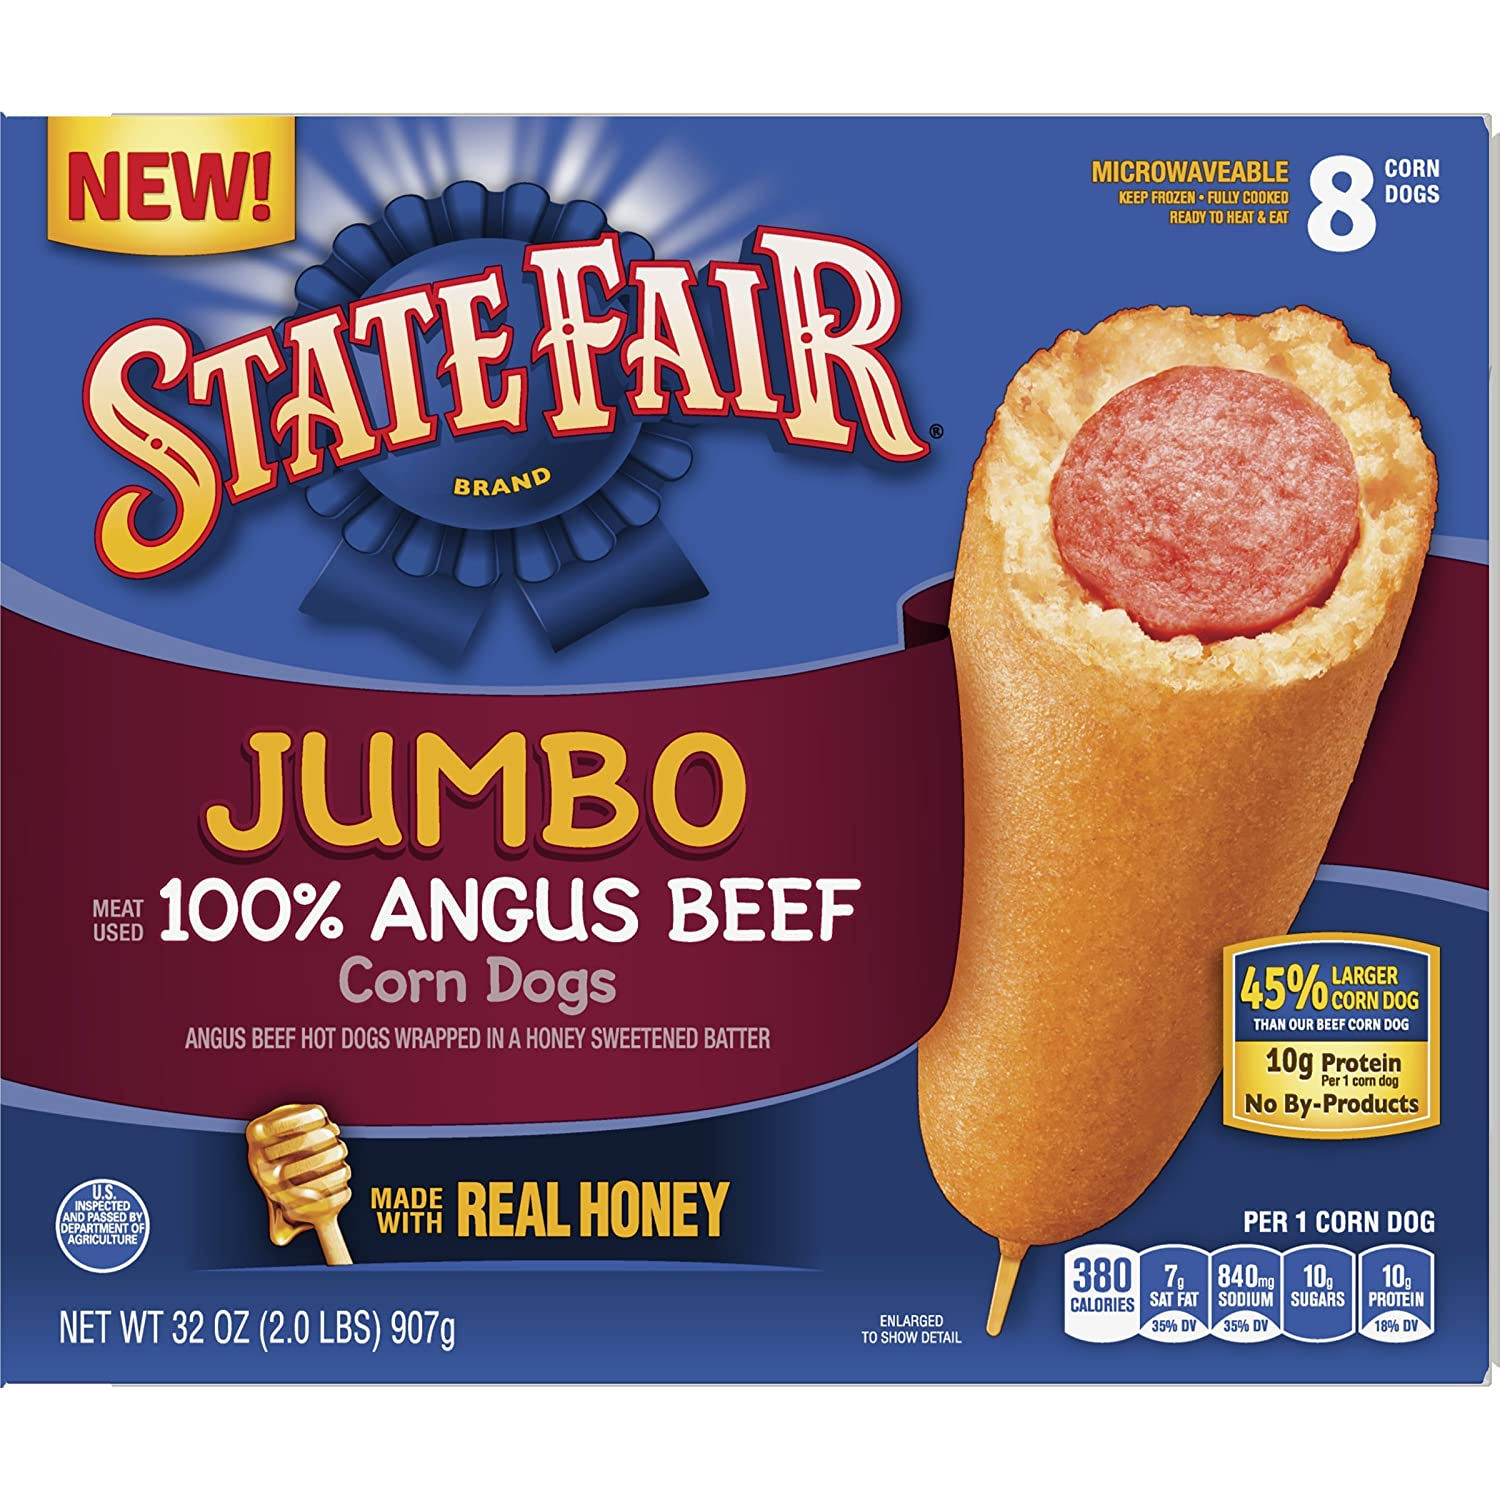 State Fair Jumbo Corn Dogs, 100% Angus Beef, 8 Ct (frozen): Amazon.com: Grocery & Gourmet Food